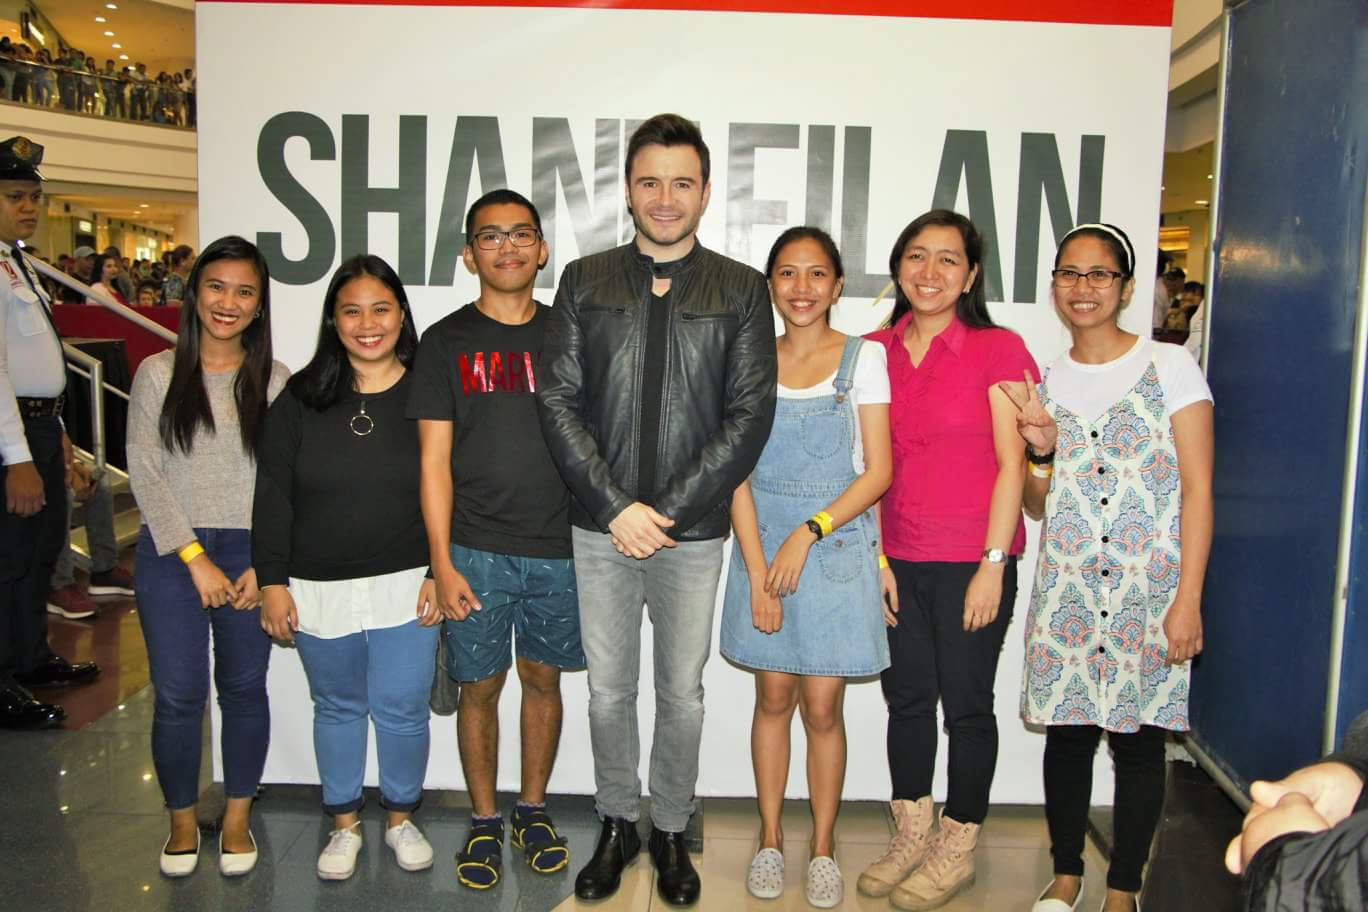 Shane Filan mall tour